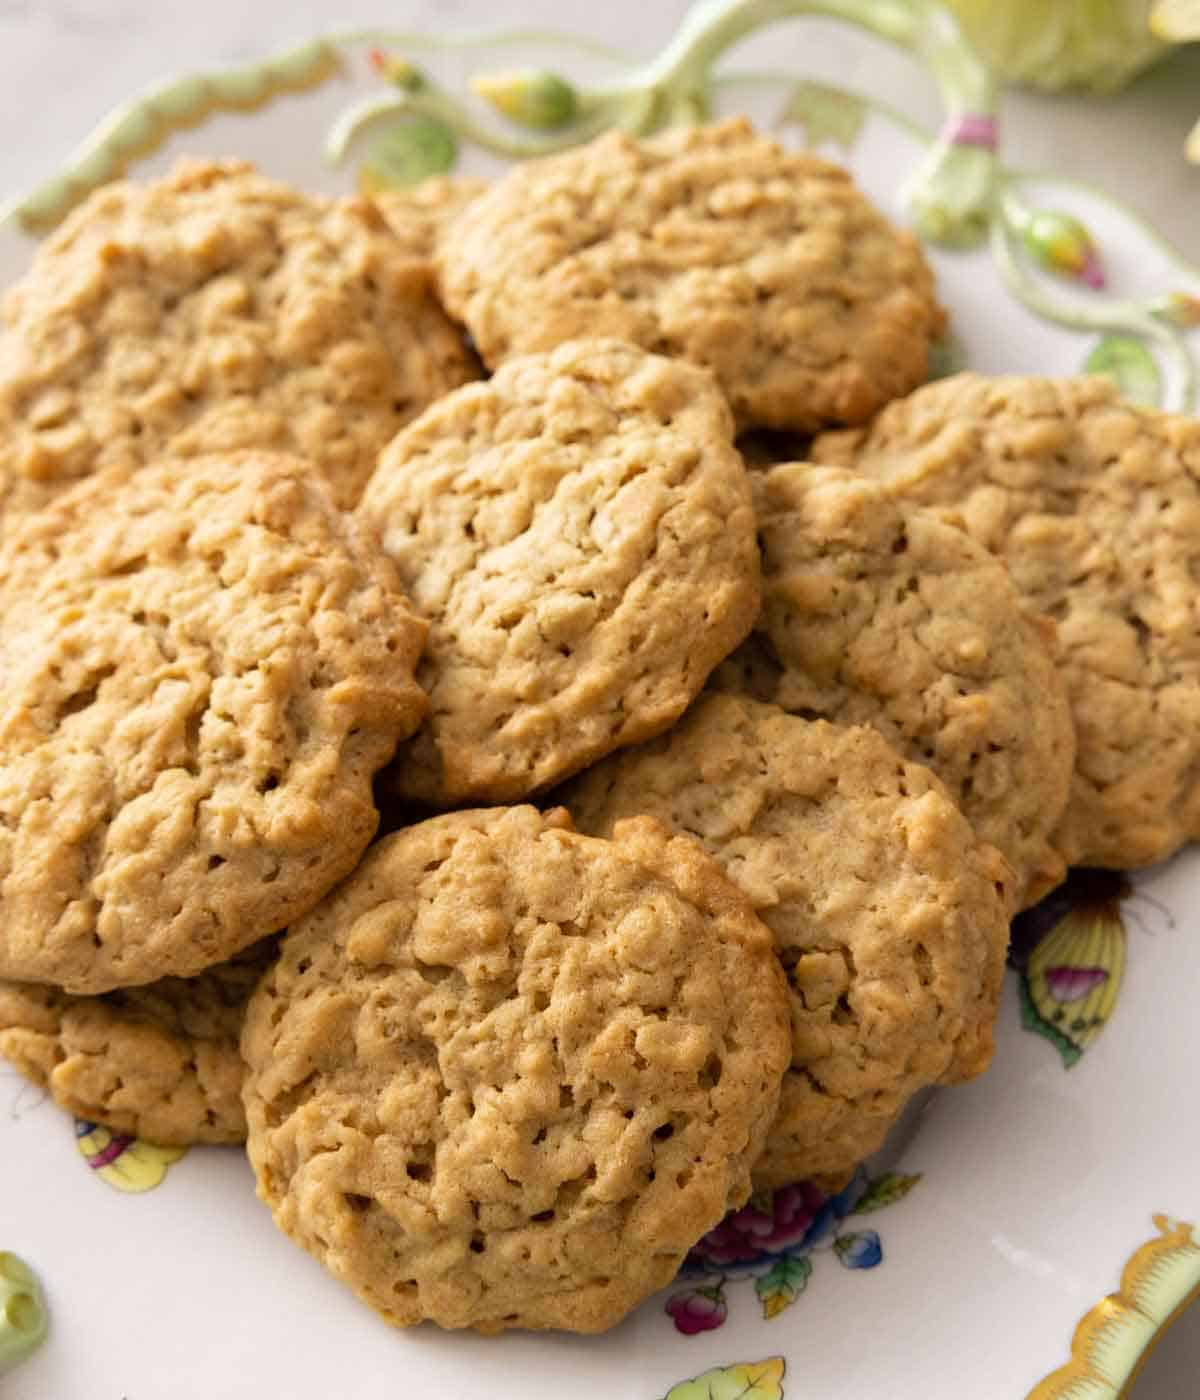 A plate with a bunch of peanut butter oatmeal cookies.